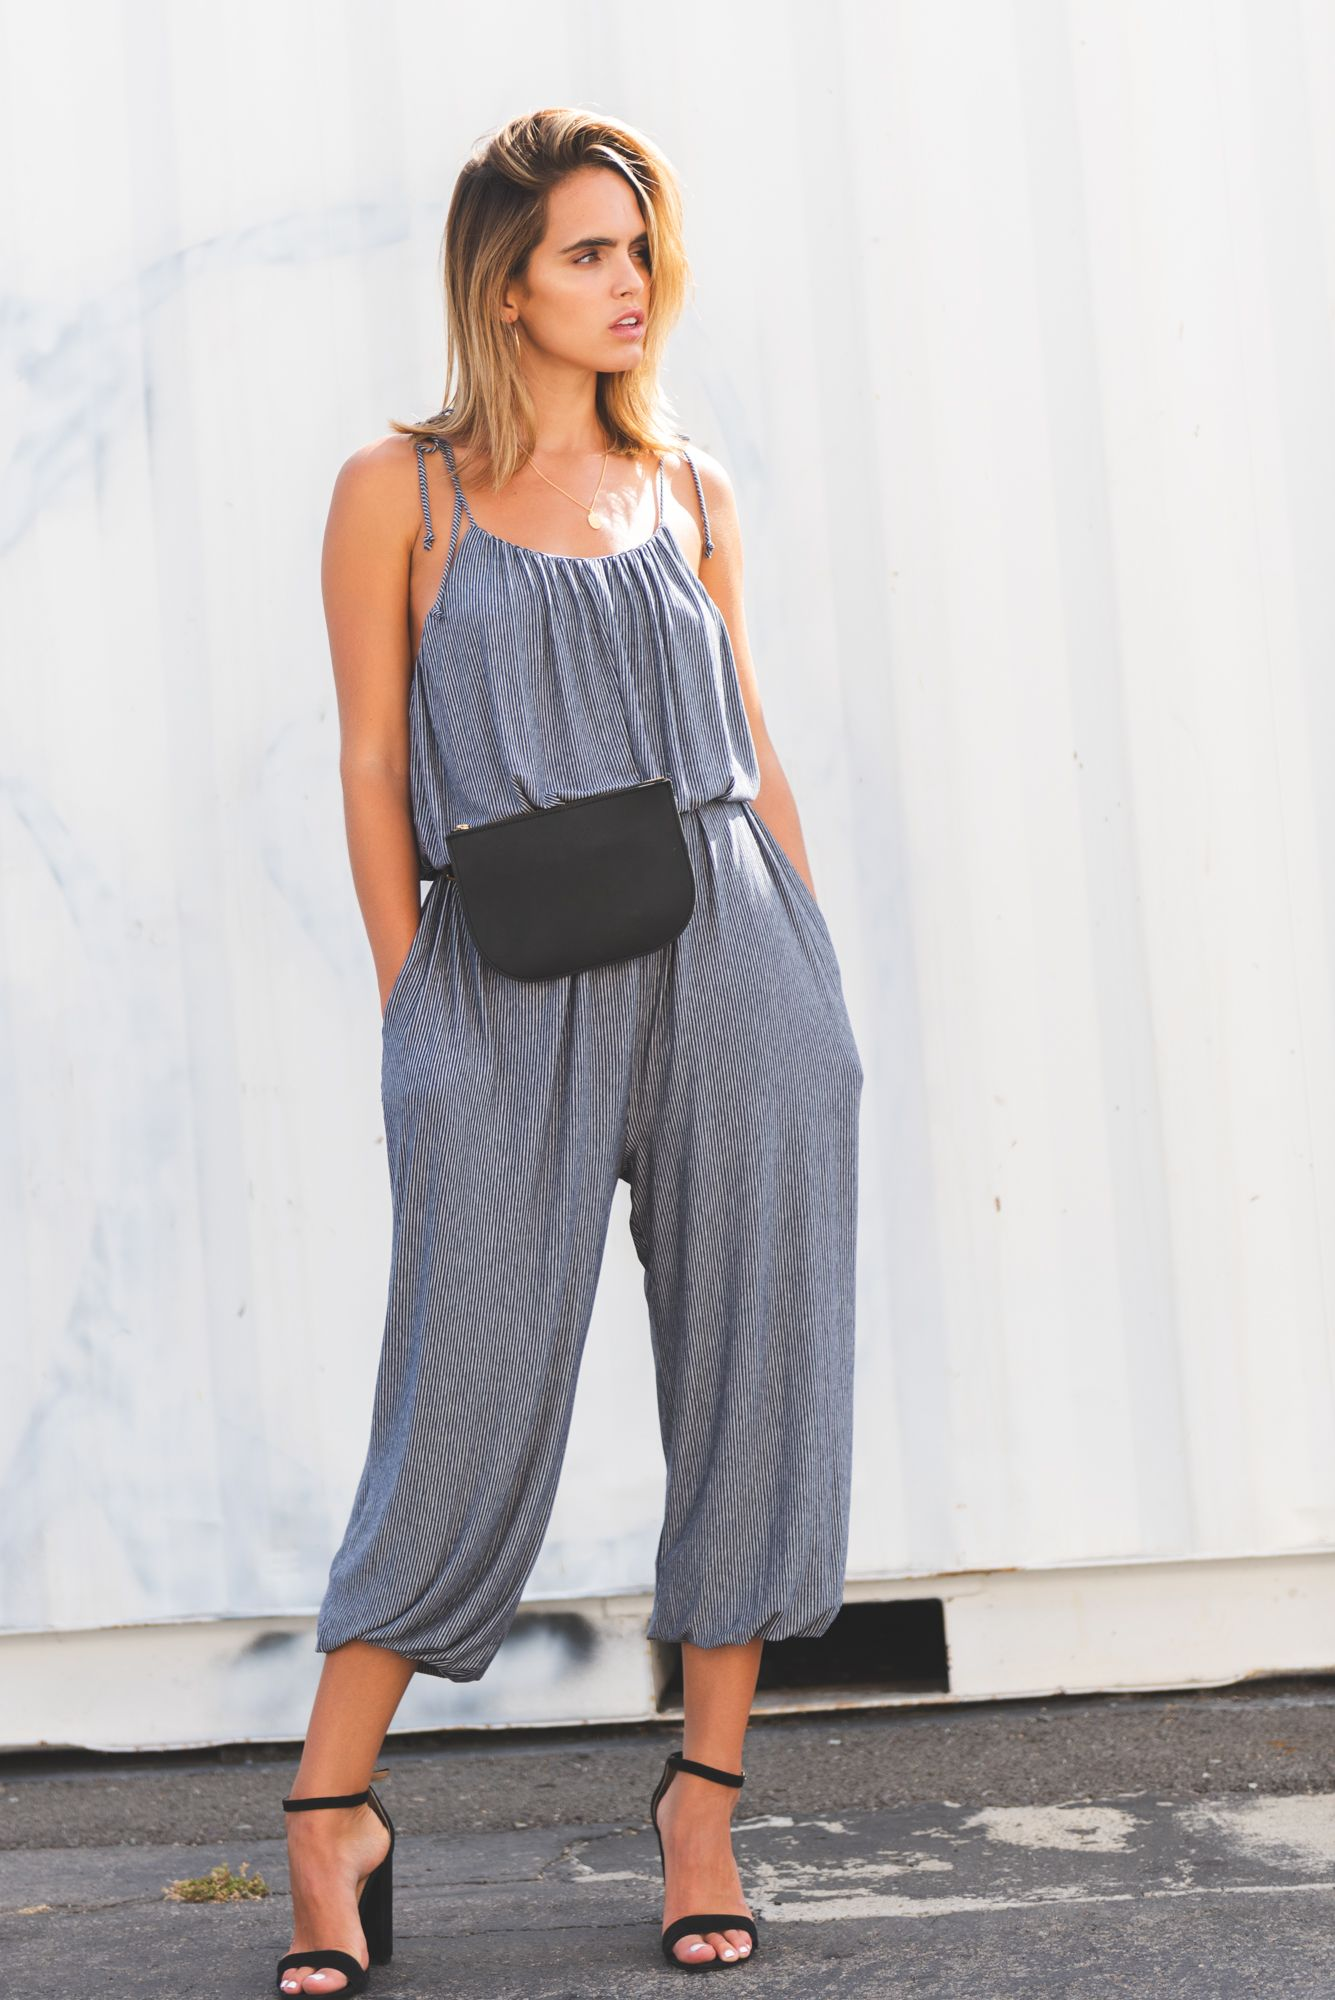 b8d60da6b25 Accessorized Outfit Ideas  Jumpsuit Striped Jumpsuit Belt Bag Leather Belt  Bag Vacation Outfit Ideas Summer Looks Summer Outfit Ideas Hot Weather  Outfit ...